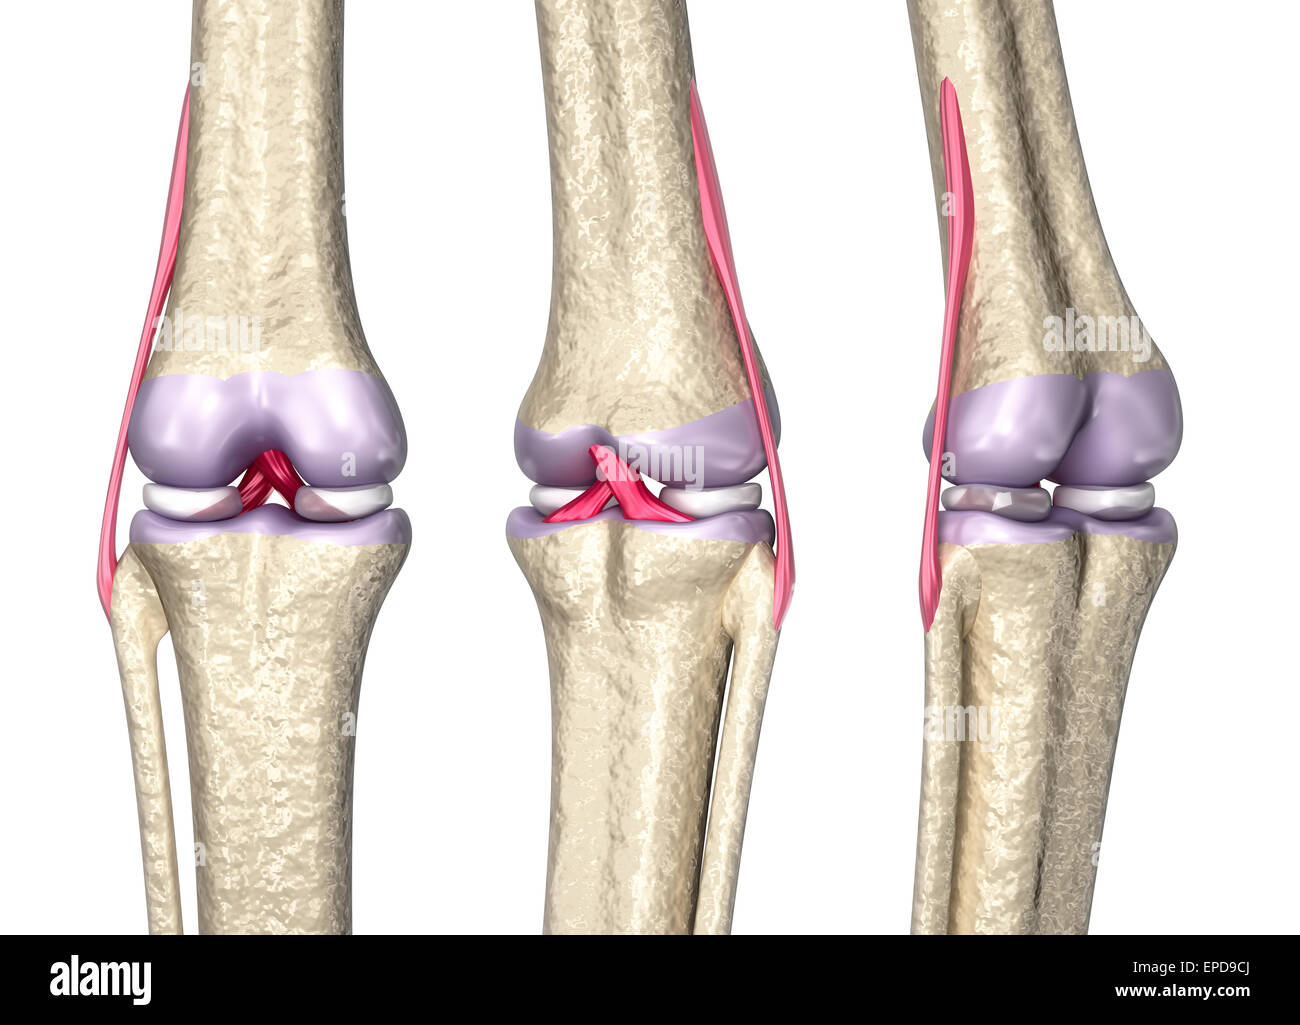 Knee Joint Anatomy 3d Model Stock Photo 82656690 Alamy